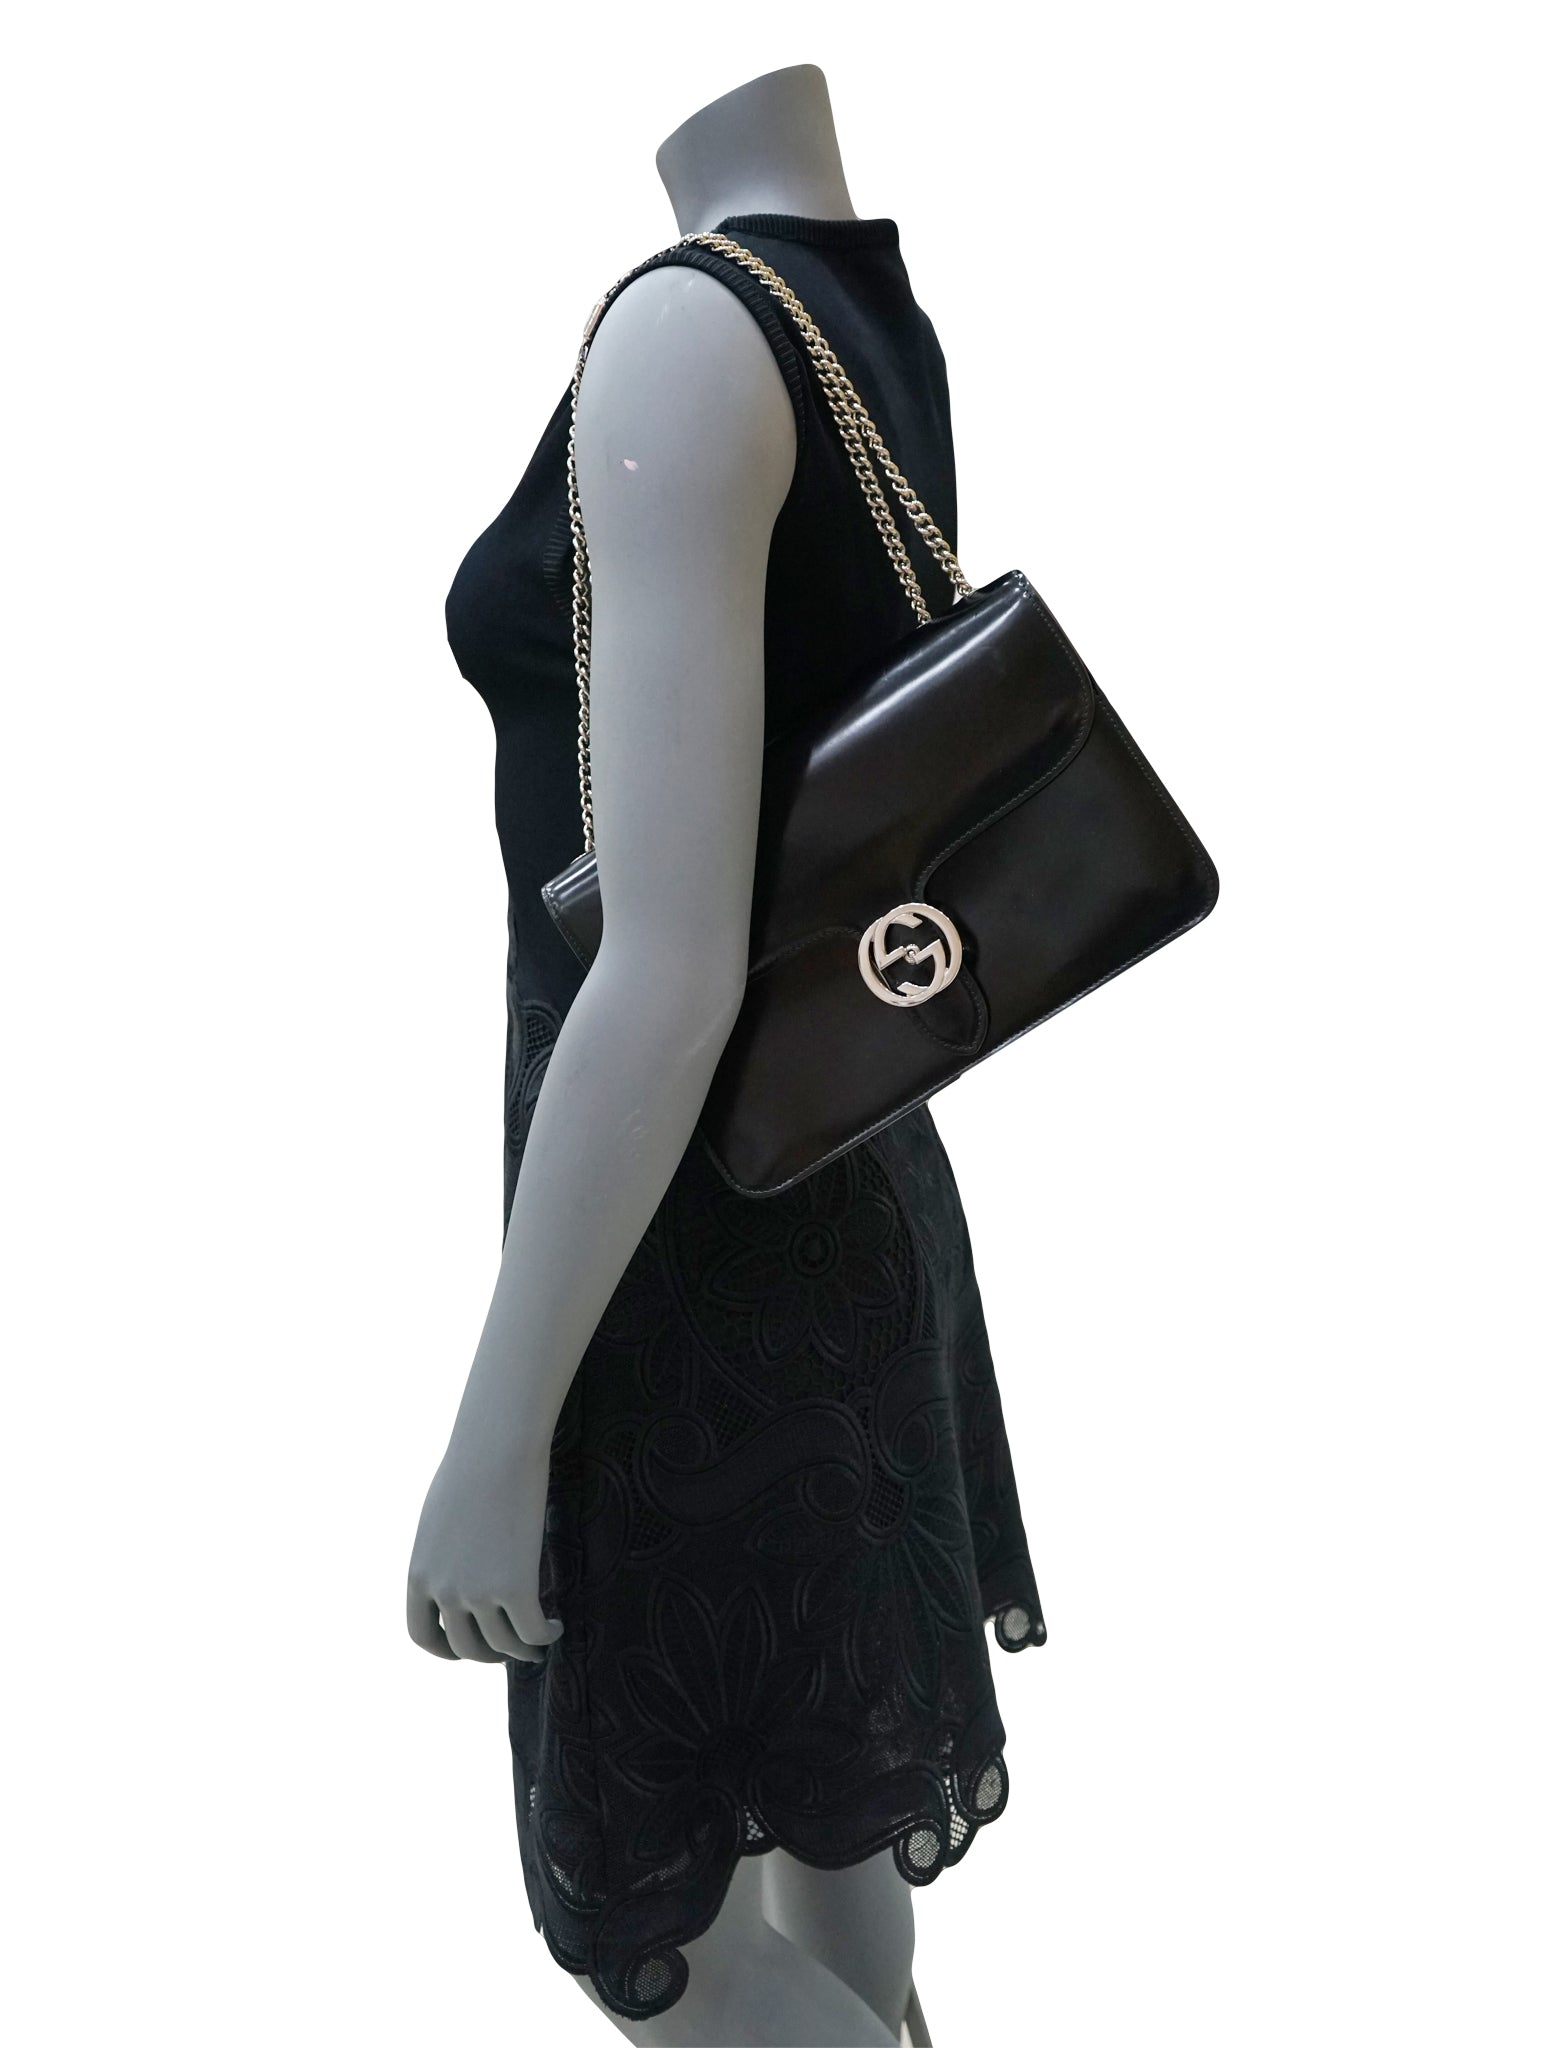 PATENT GG INTERLOCKING SHOULDER BAG